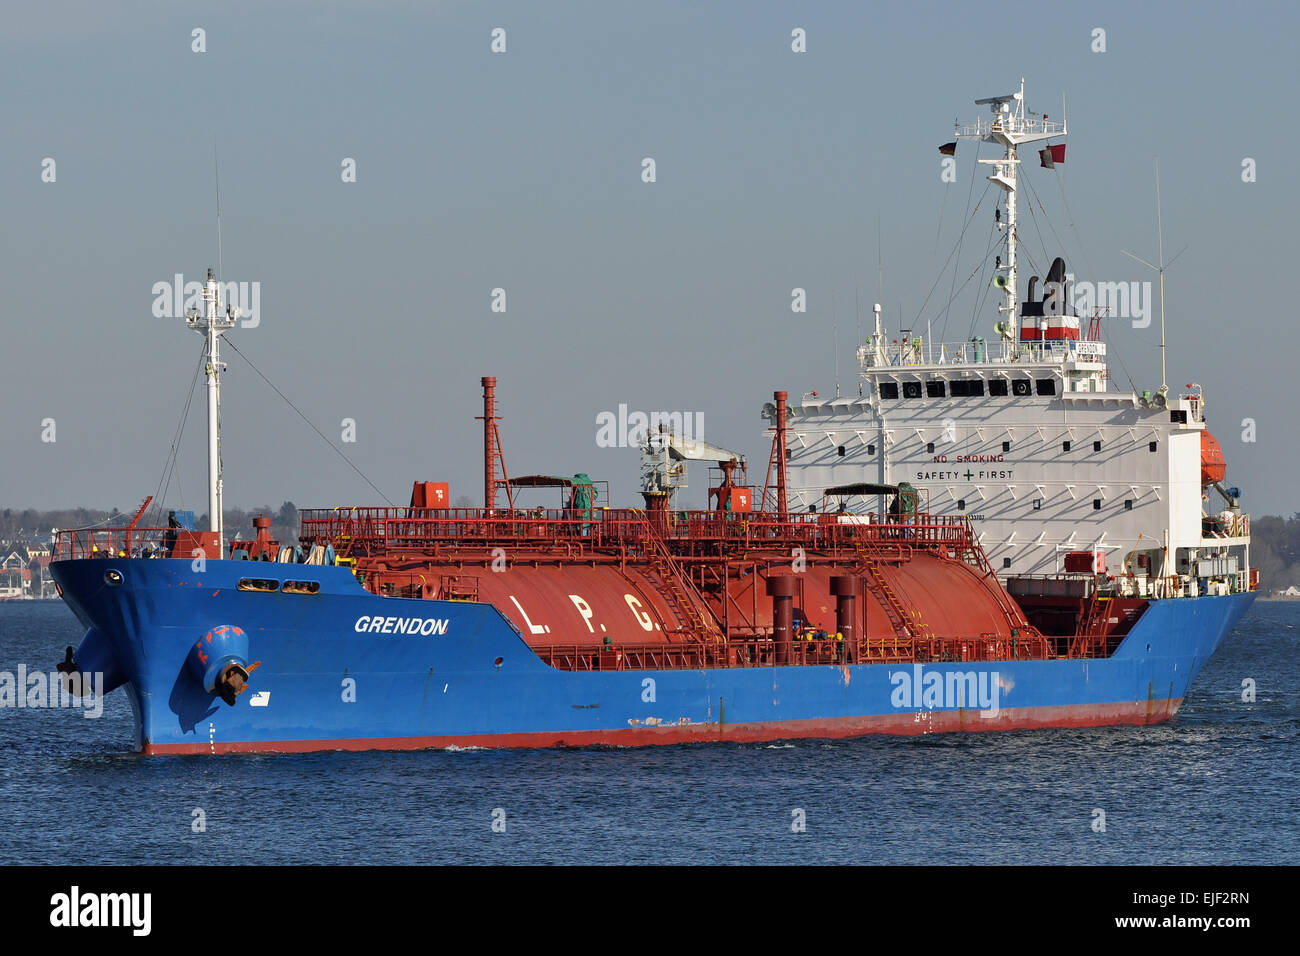 LPG-Carrier Grendon entering Holtenau locks in Kiel - Stock Image